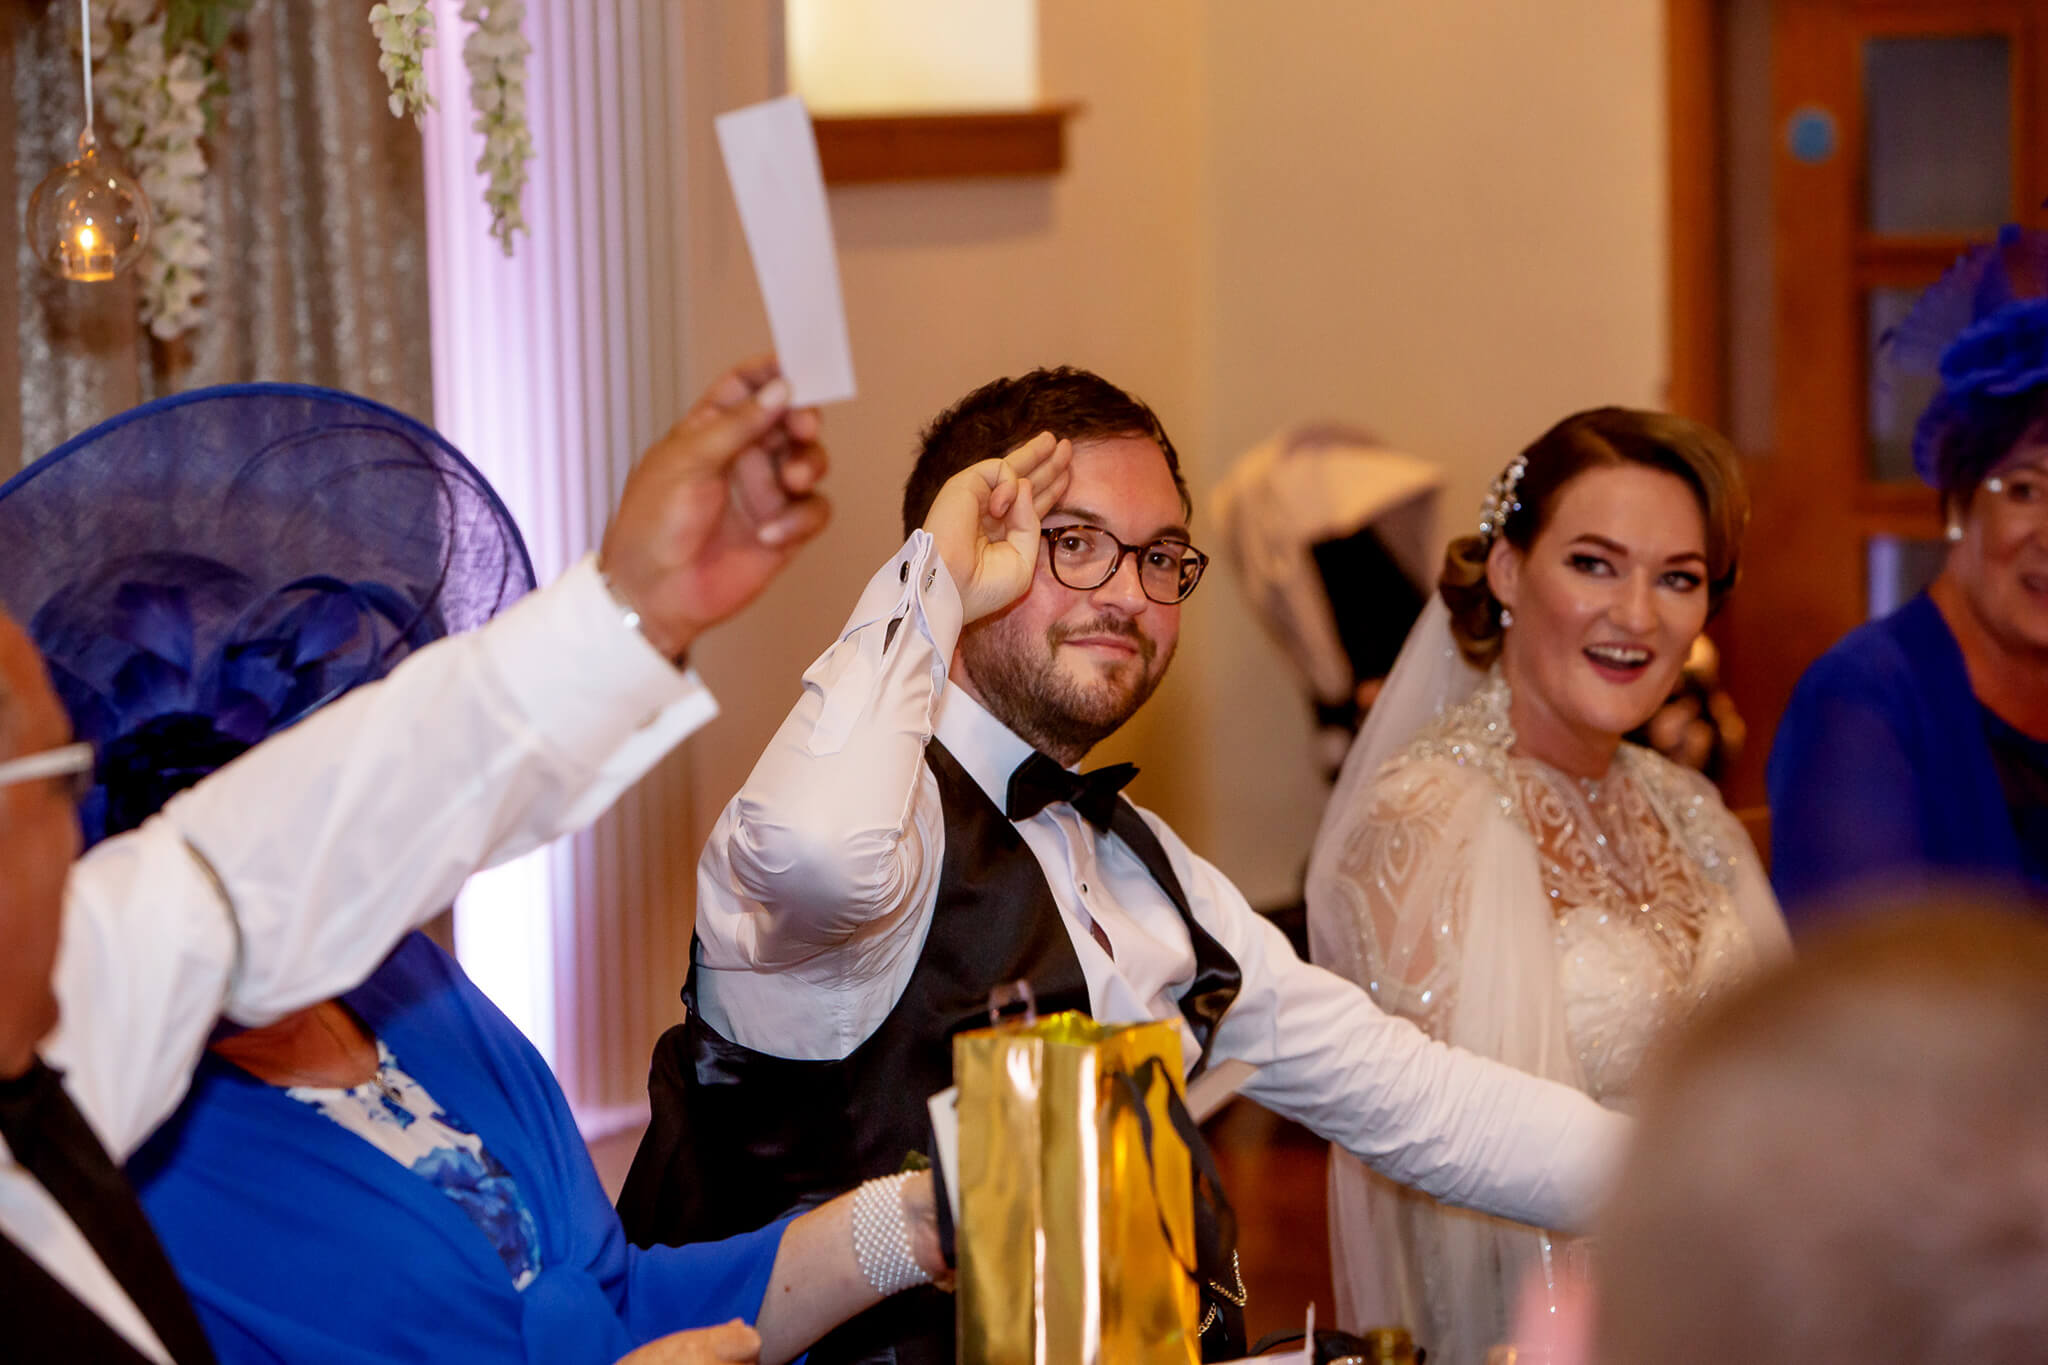 bolton-school-wedding-photographer-stanbury-photography-034